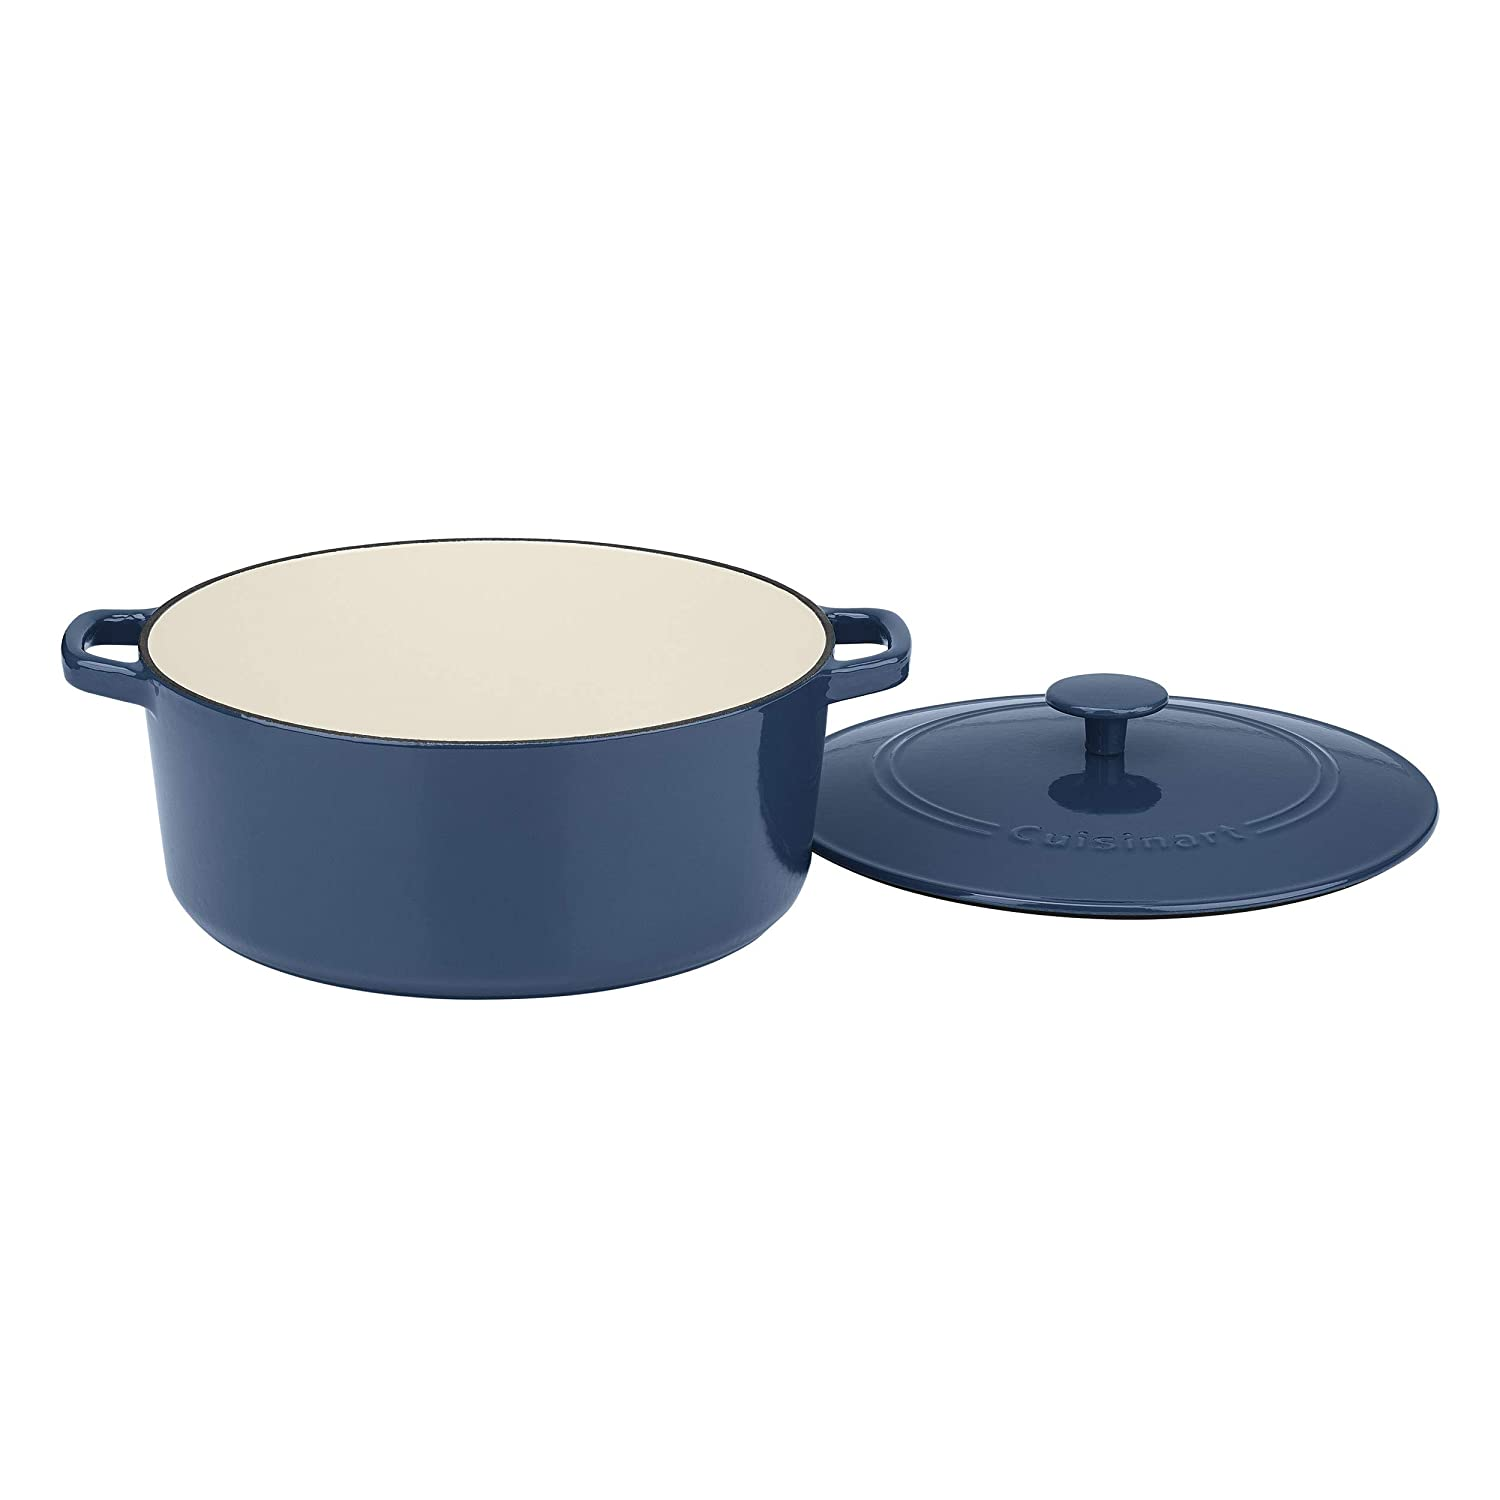 Cuisinart CI670-30BG 7 Qt Round Casserole Covered, Enameled Provencial Blue